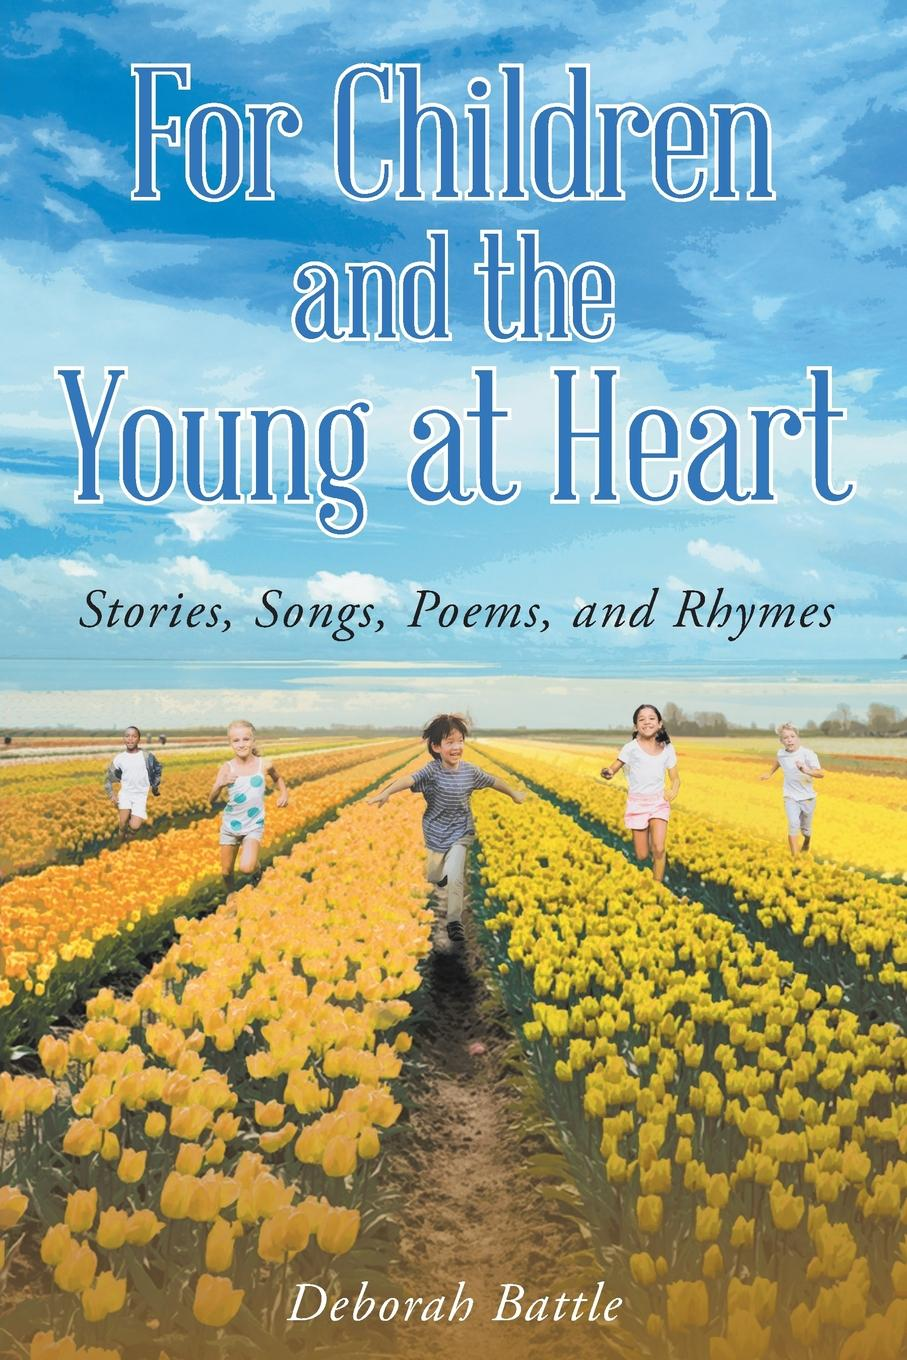 Deborah Battle For Children and the Young at Heart. Stories, Songs, Poems, and Rhymes hilary mantel learning to talk short stories